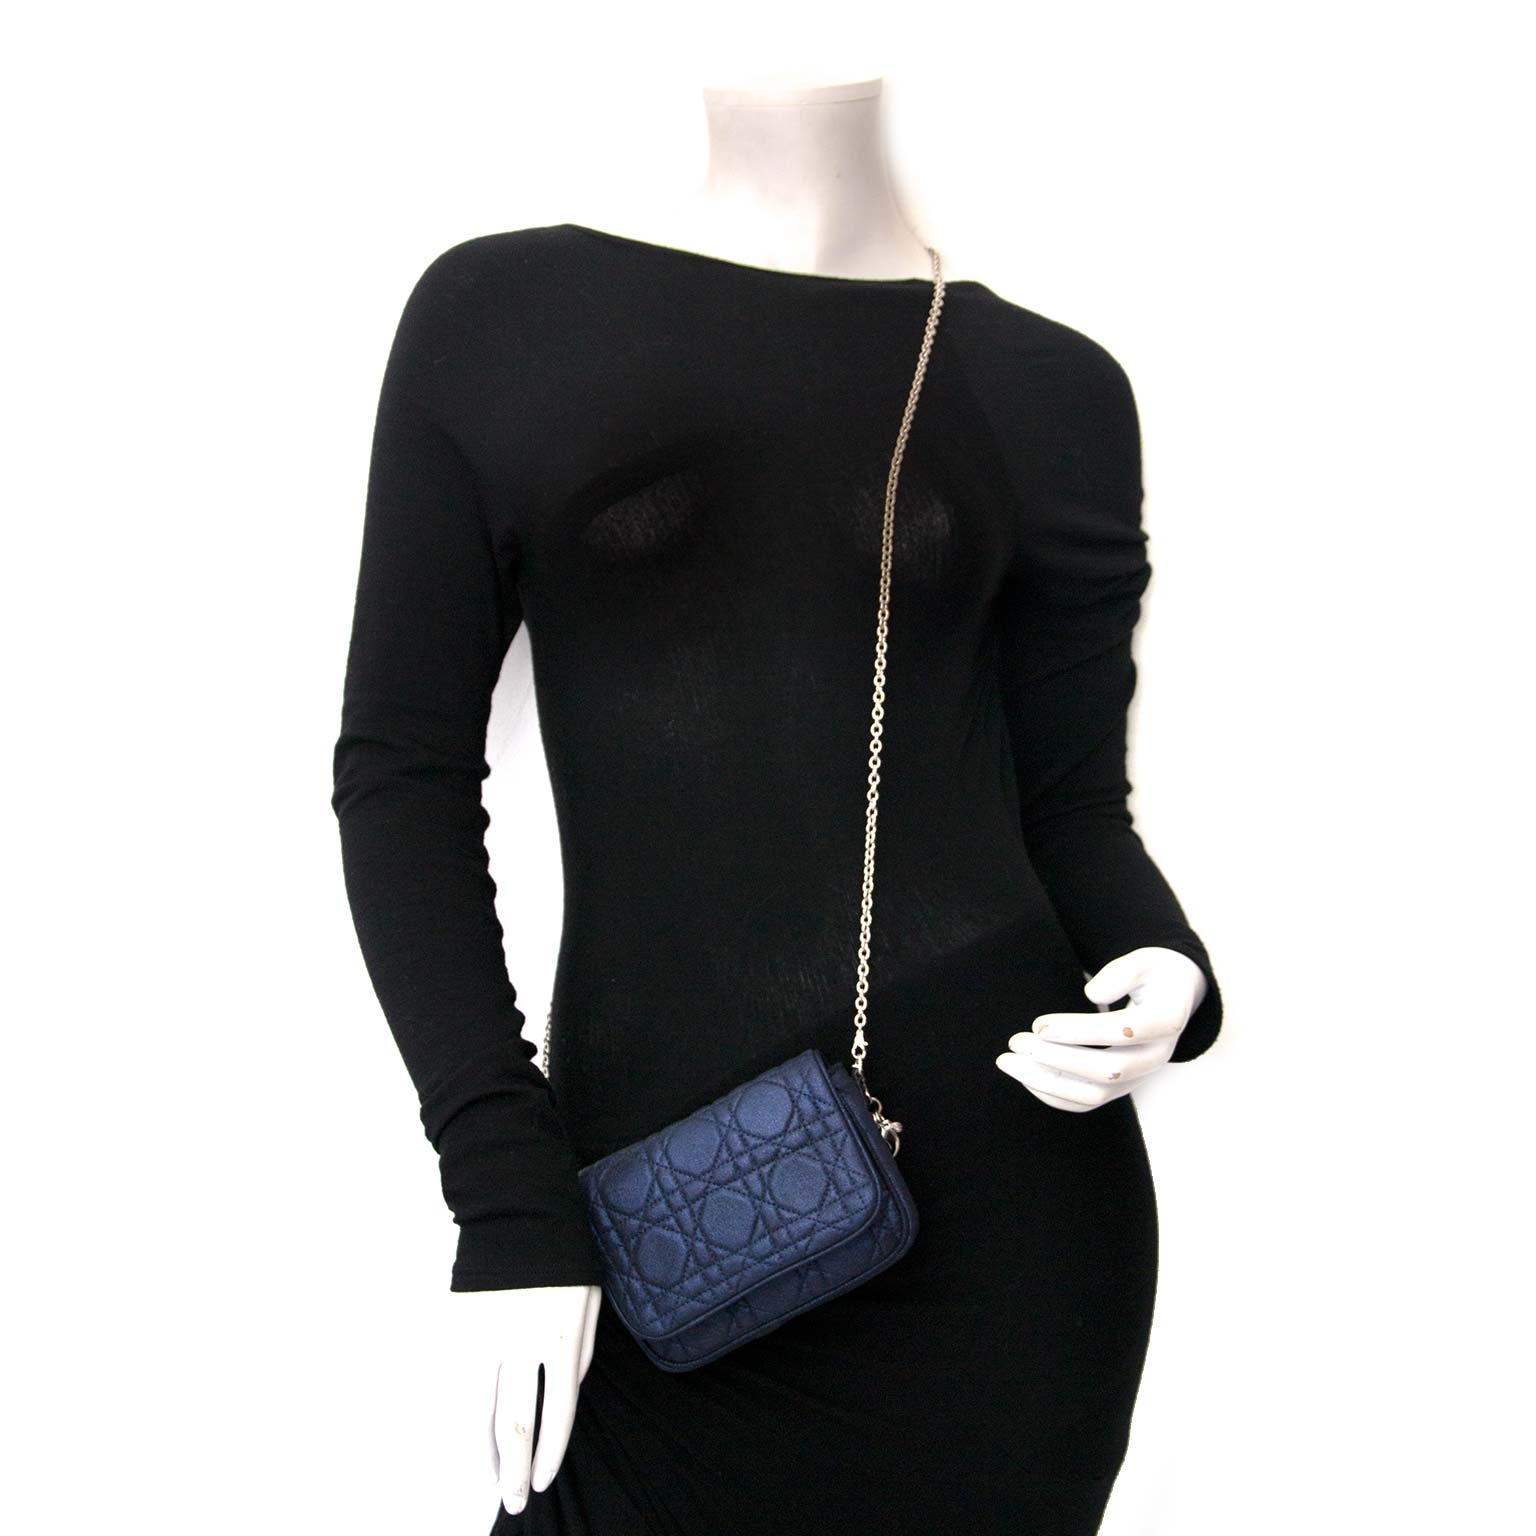 5dd528008320 ... Dior Blue Metallic Crossbody Bag Buy authentic designer Dior secondhand bags  at Labellov at the best